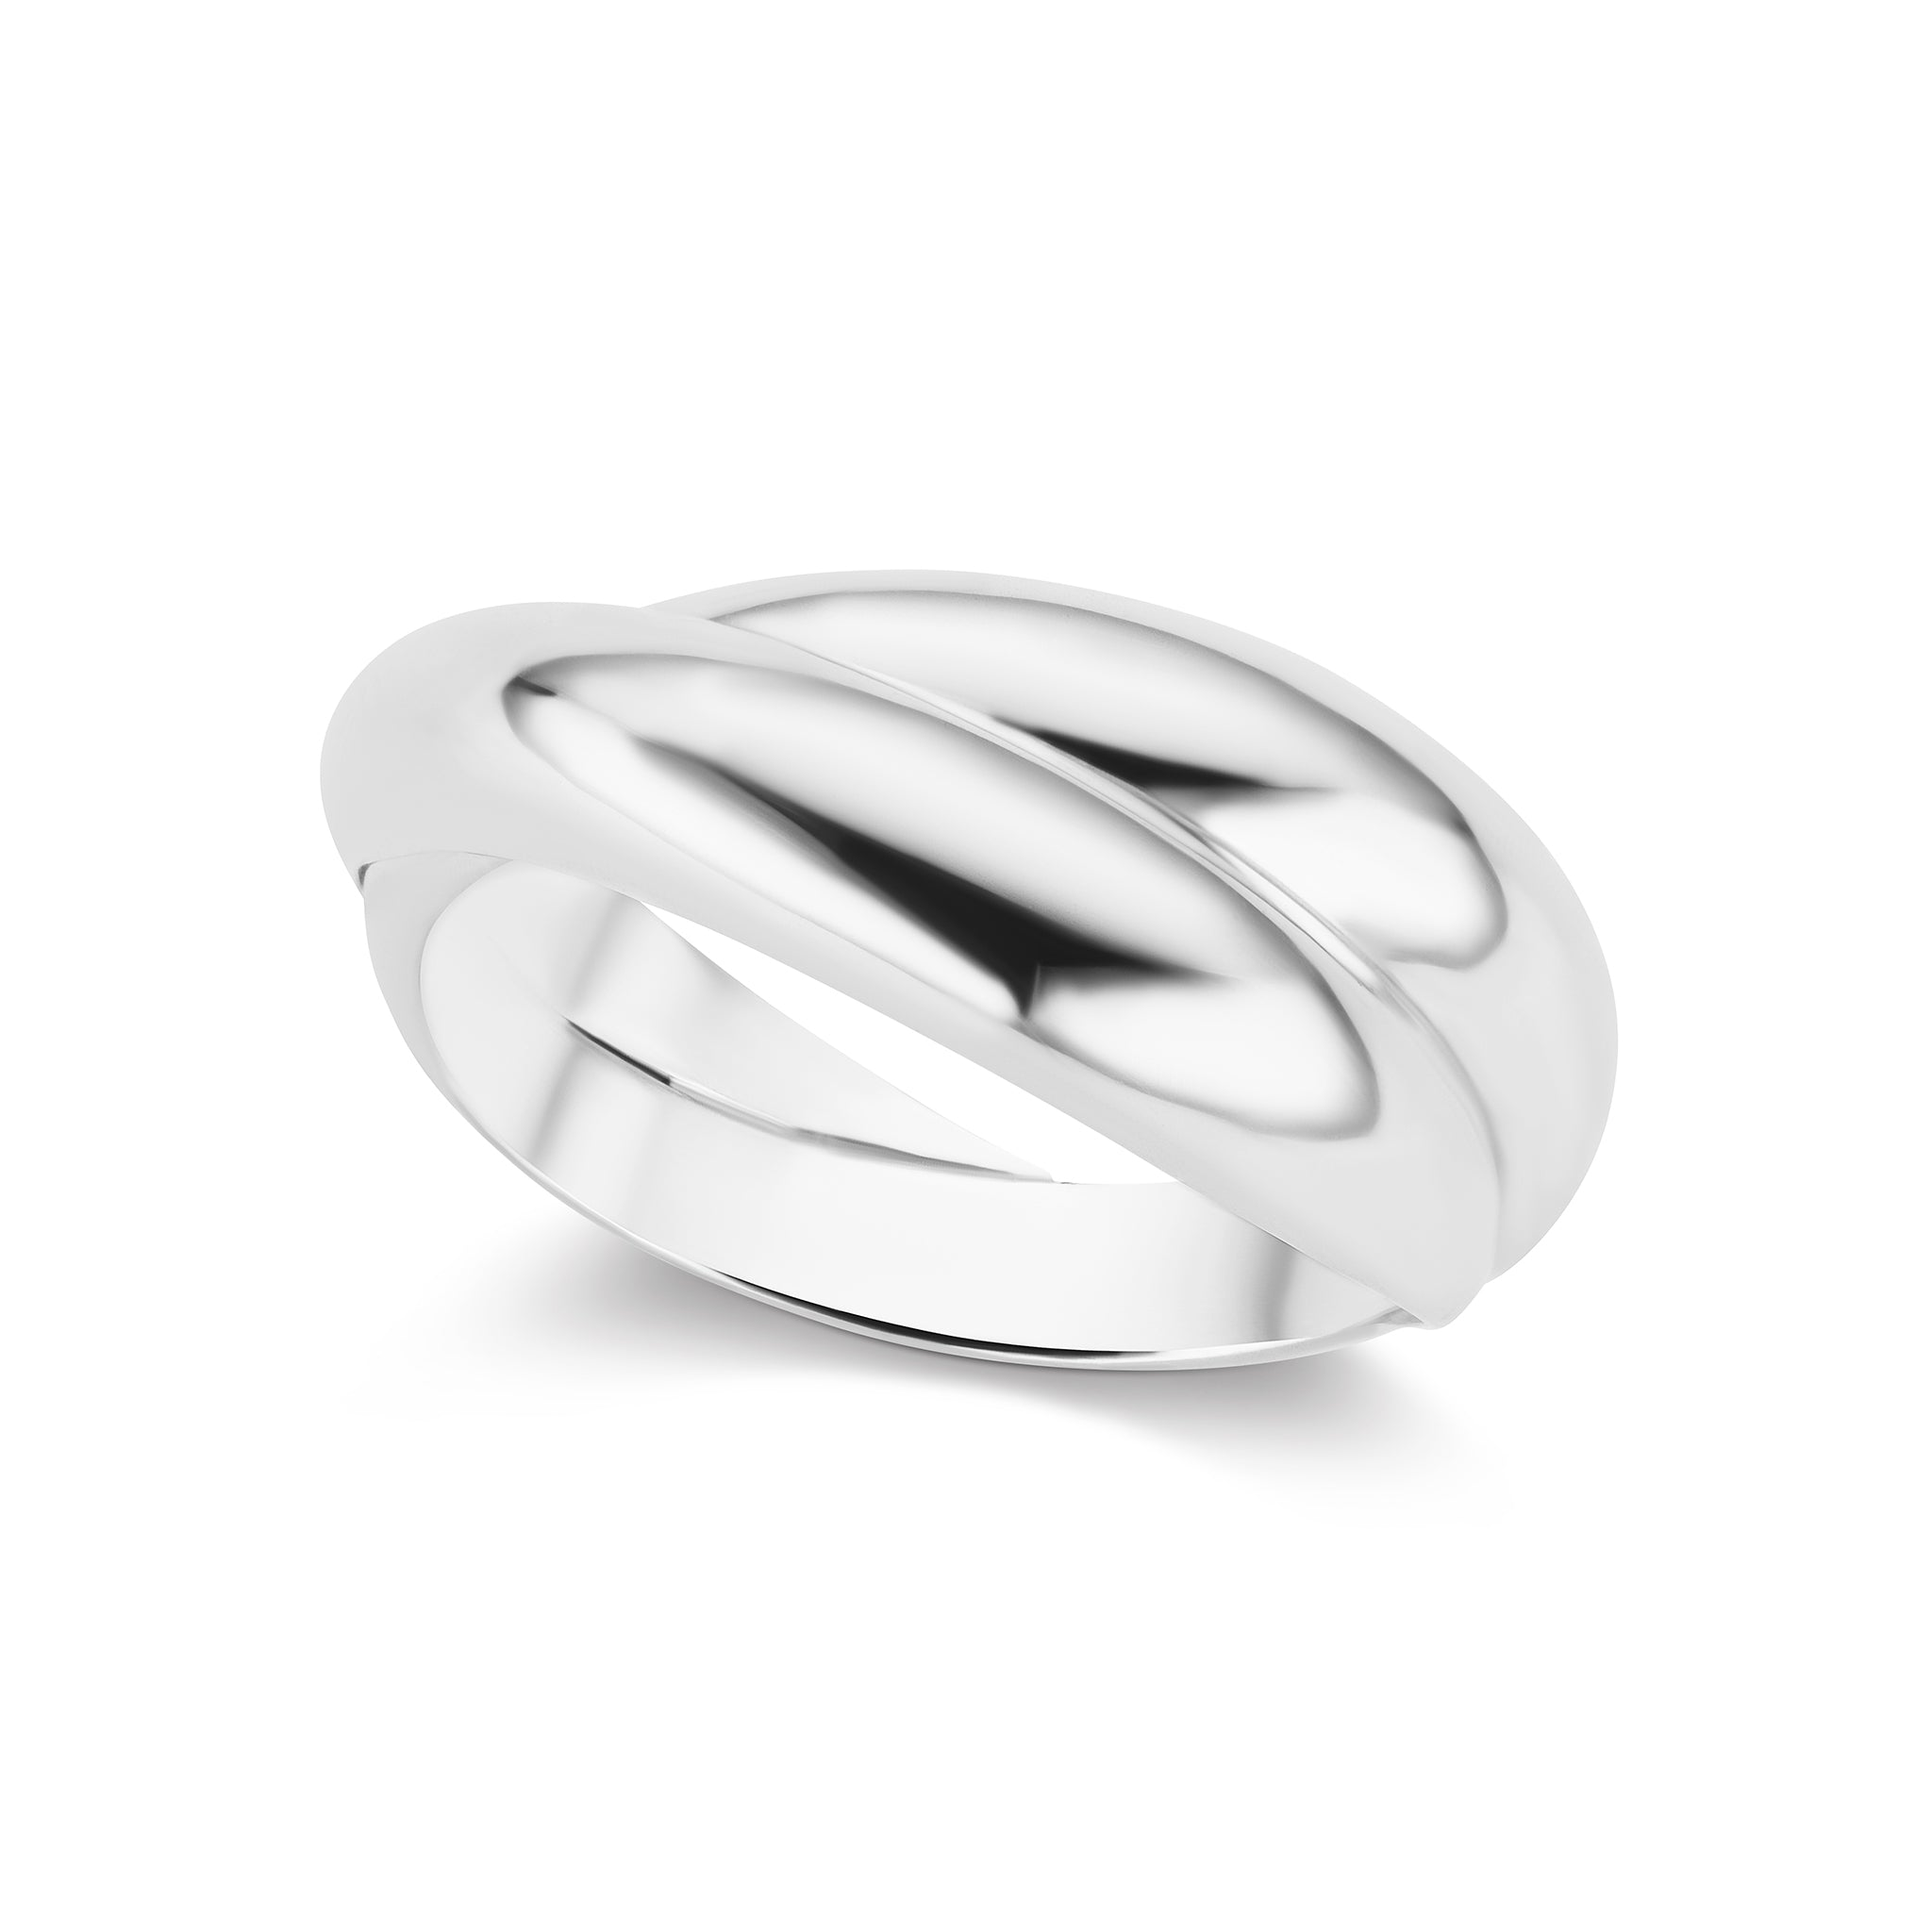 The Silver Icon Ring